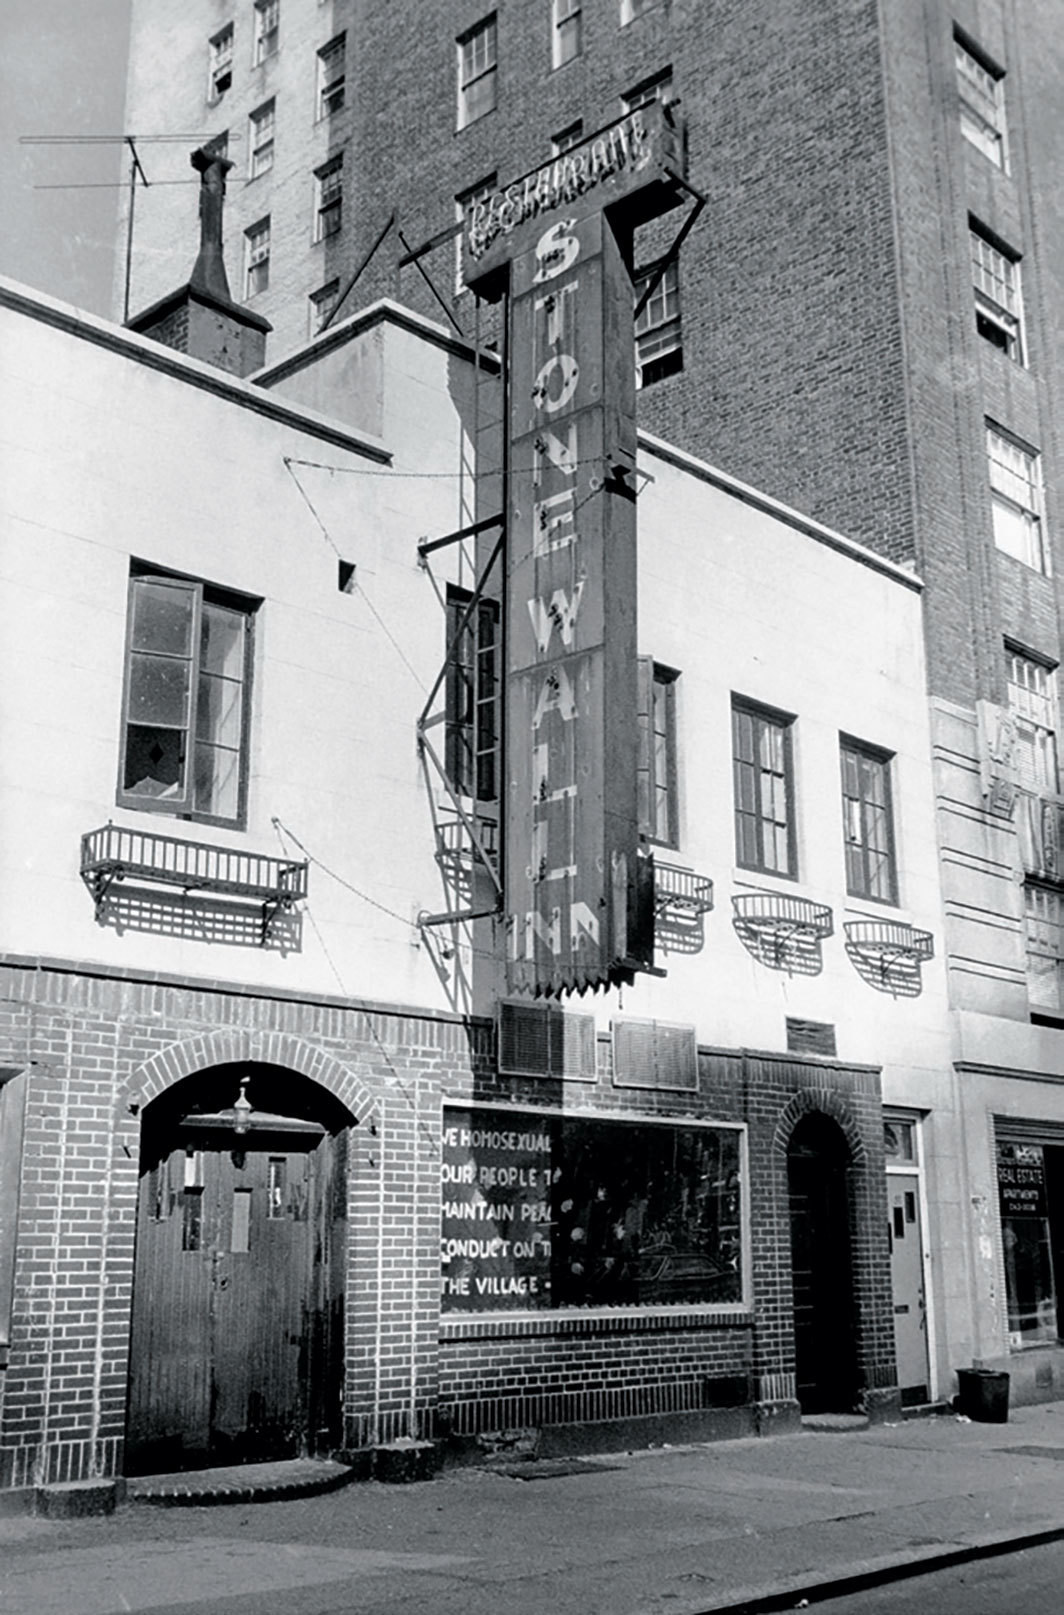 Stonewall Inn, Christopher Street, New York, 1969. Photo: Diana Davies.